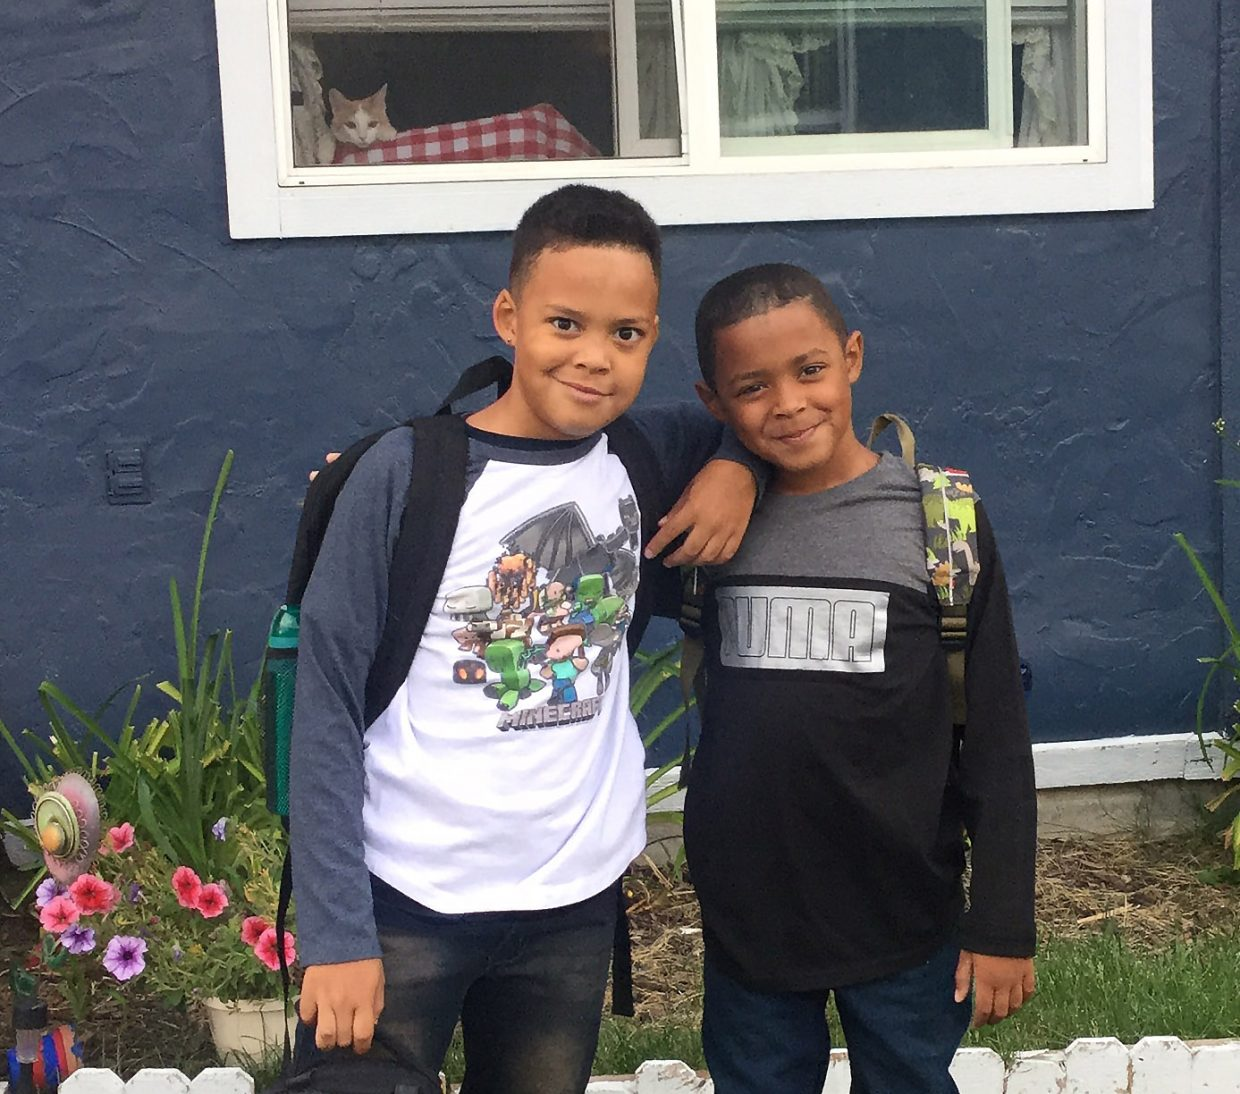 Third grader Treavon Wilson and second grader Tobias Wilson on their first day at Sandrock Elementary School were photo-bombed by their kitty Mabel.